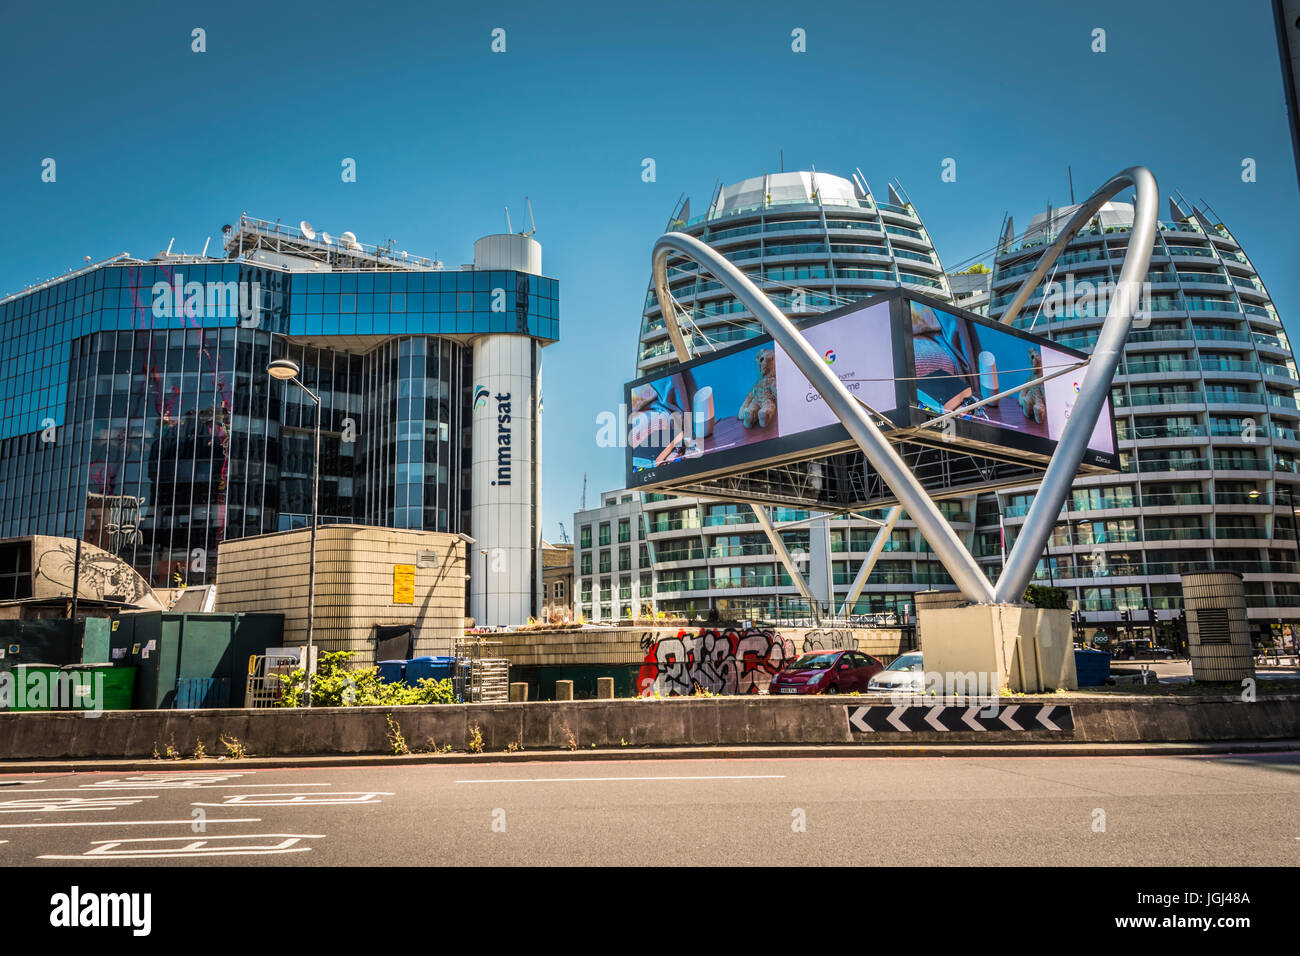 Inmarsat offices on Old Street Roundabout, aka Silicon Roundabout, London, England, U.K. Stock Photo